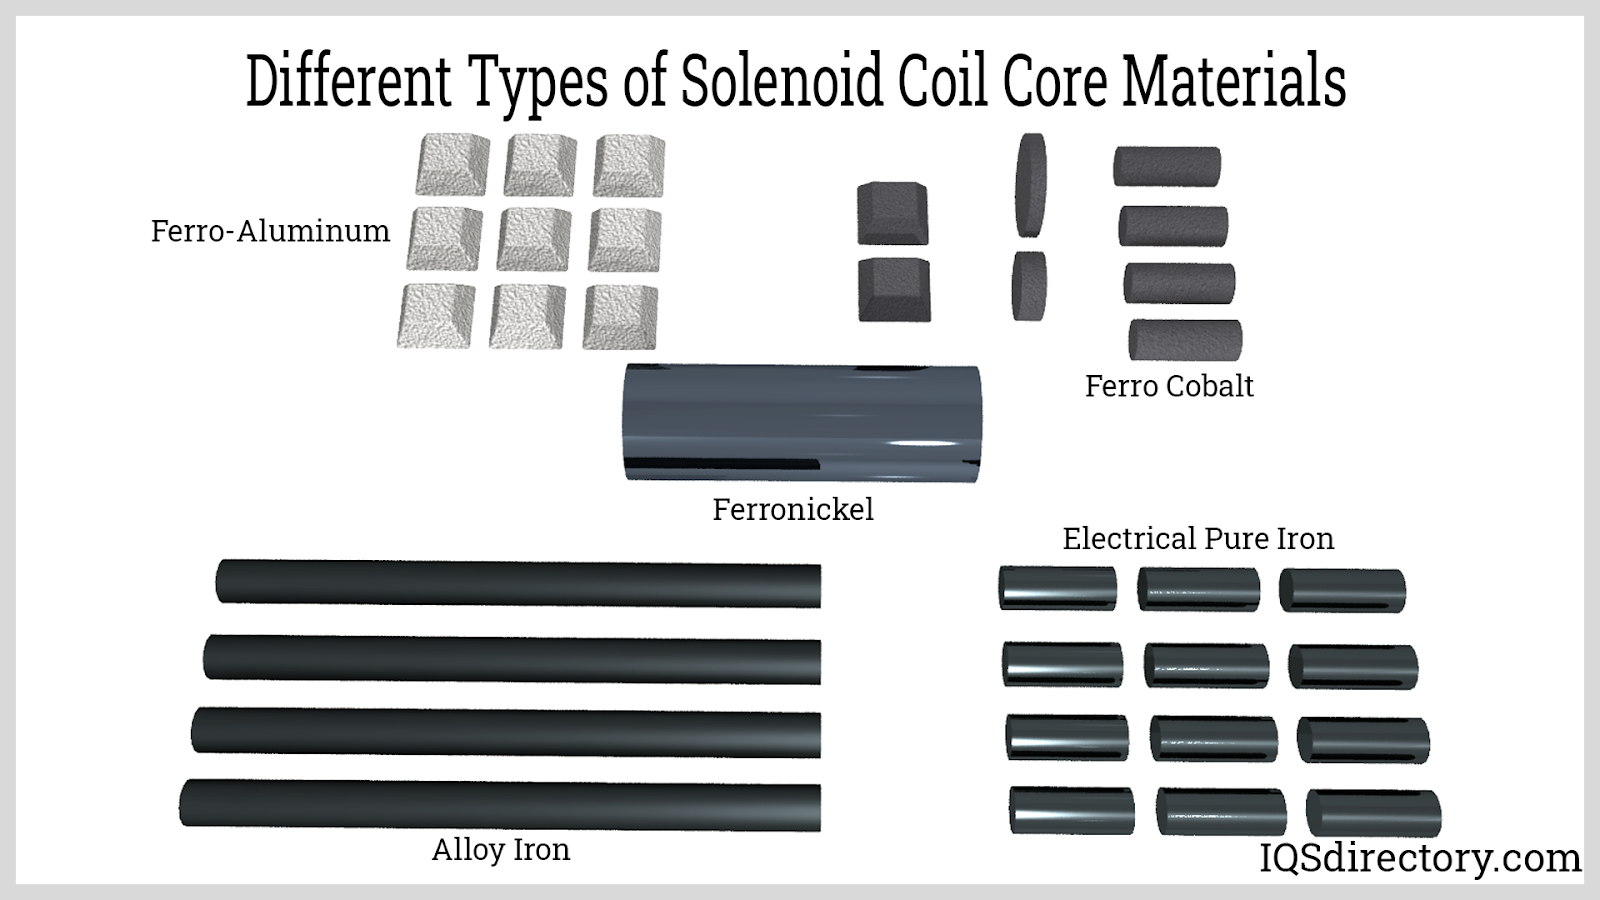 Different Types of Solenoid Coil Core Materials